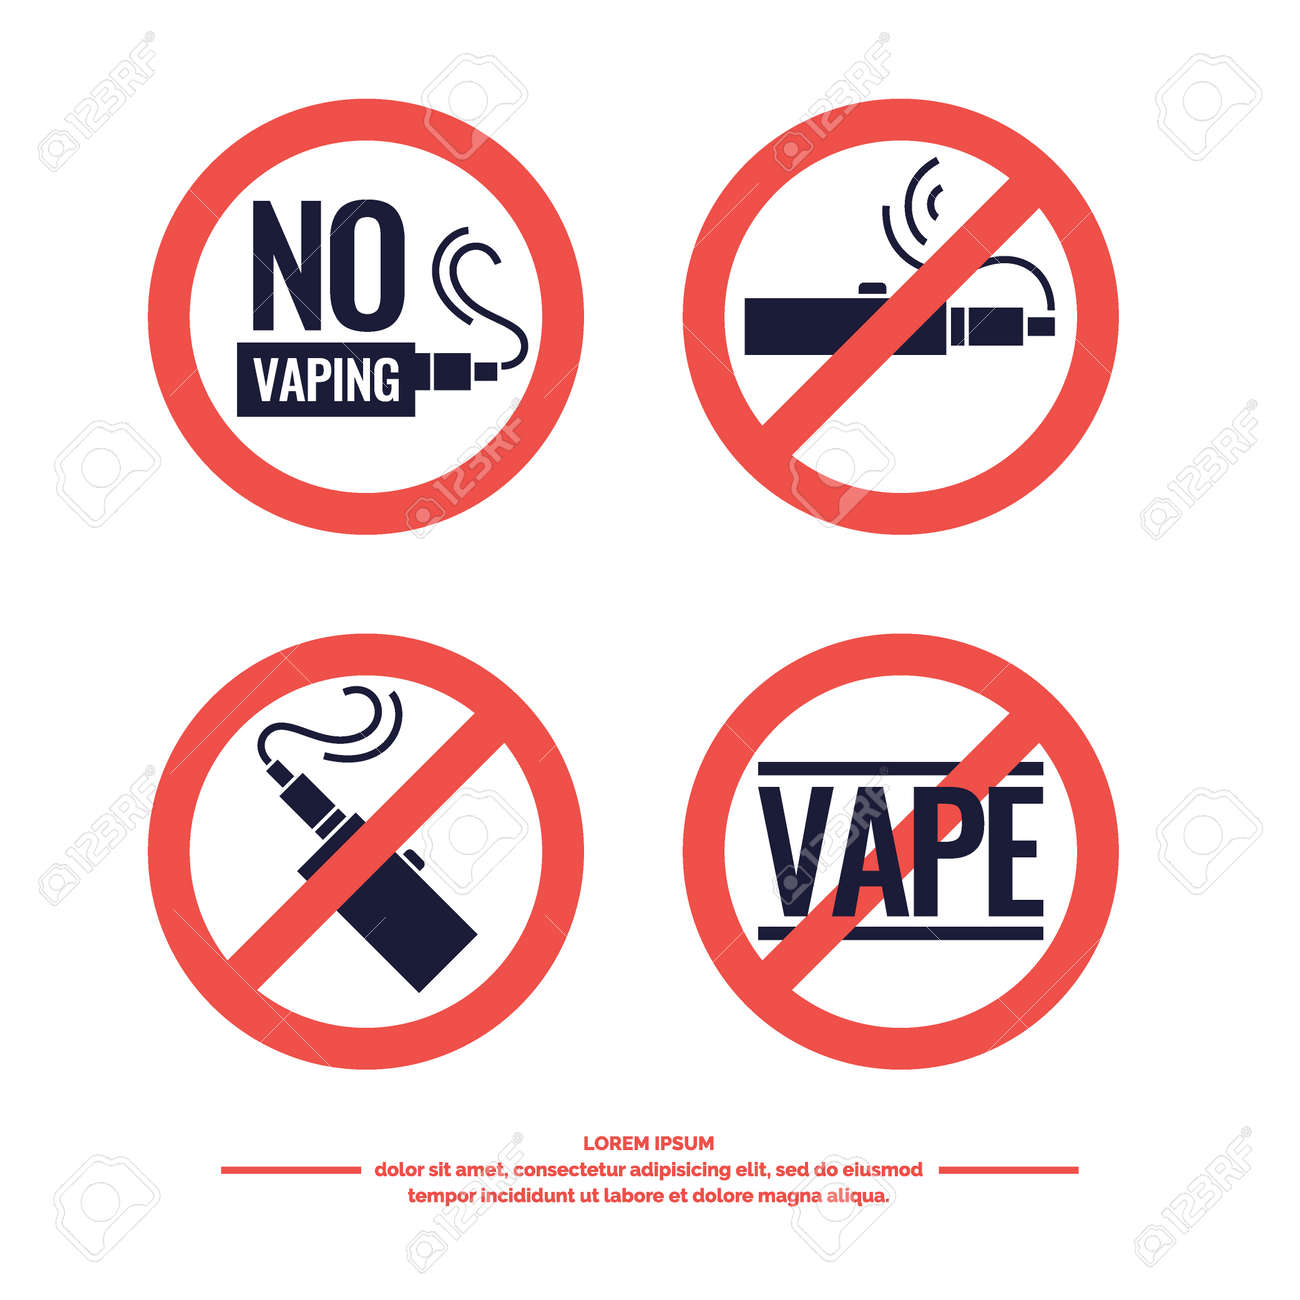 no smoking sign prohibiting drawing and poster of electronic